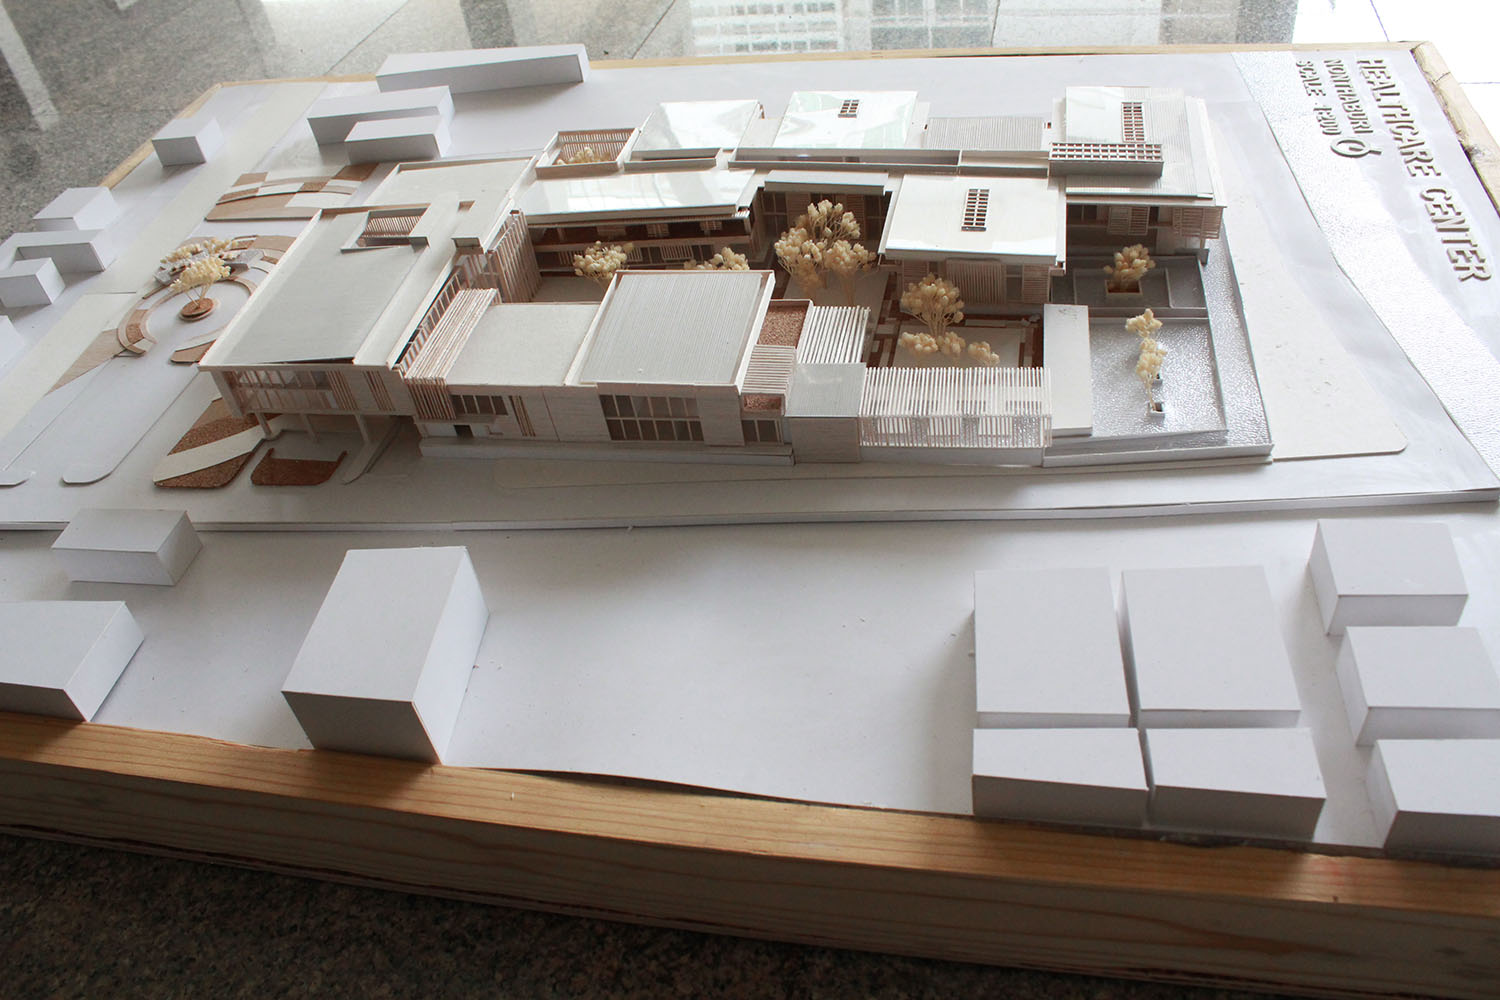 Architecture Thesis Academic Year 2015